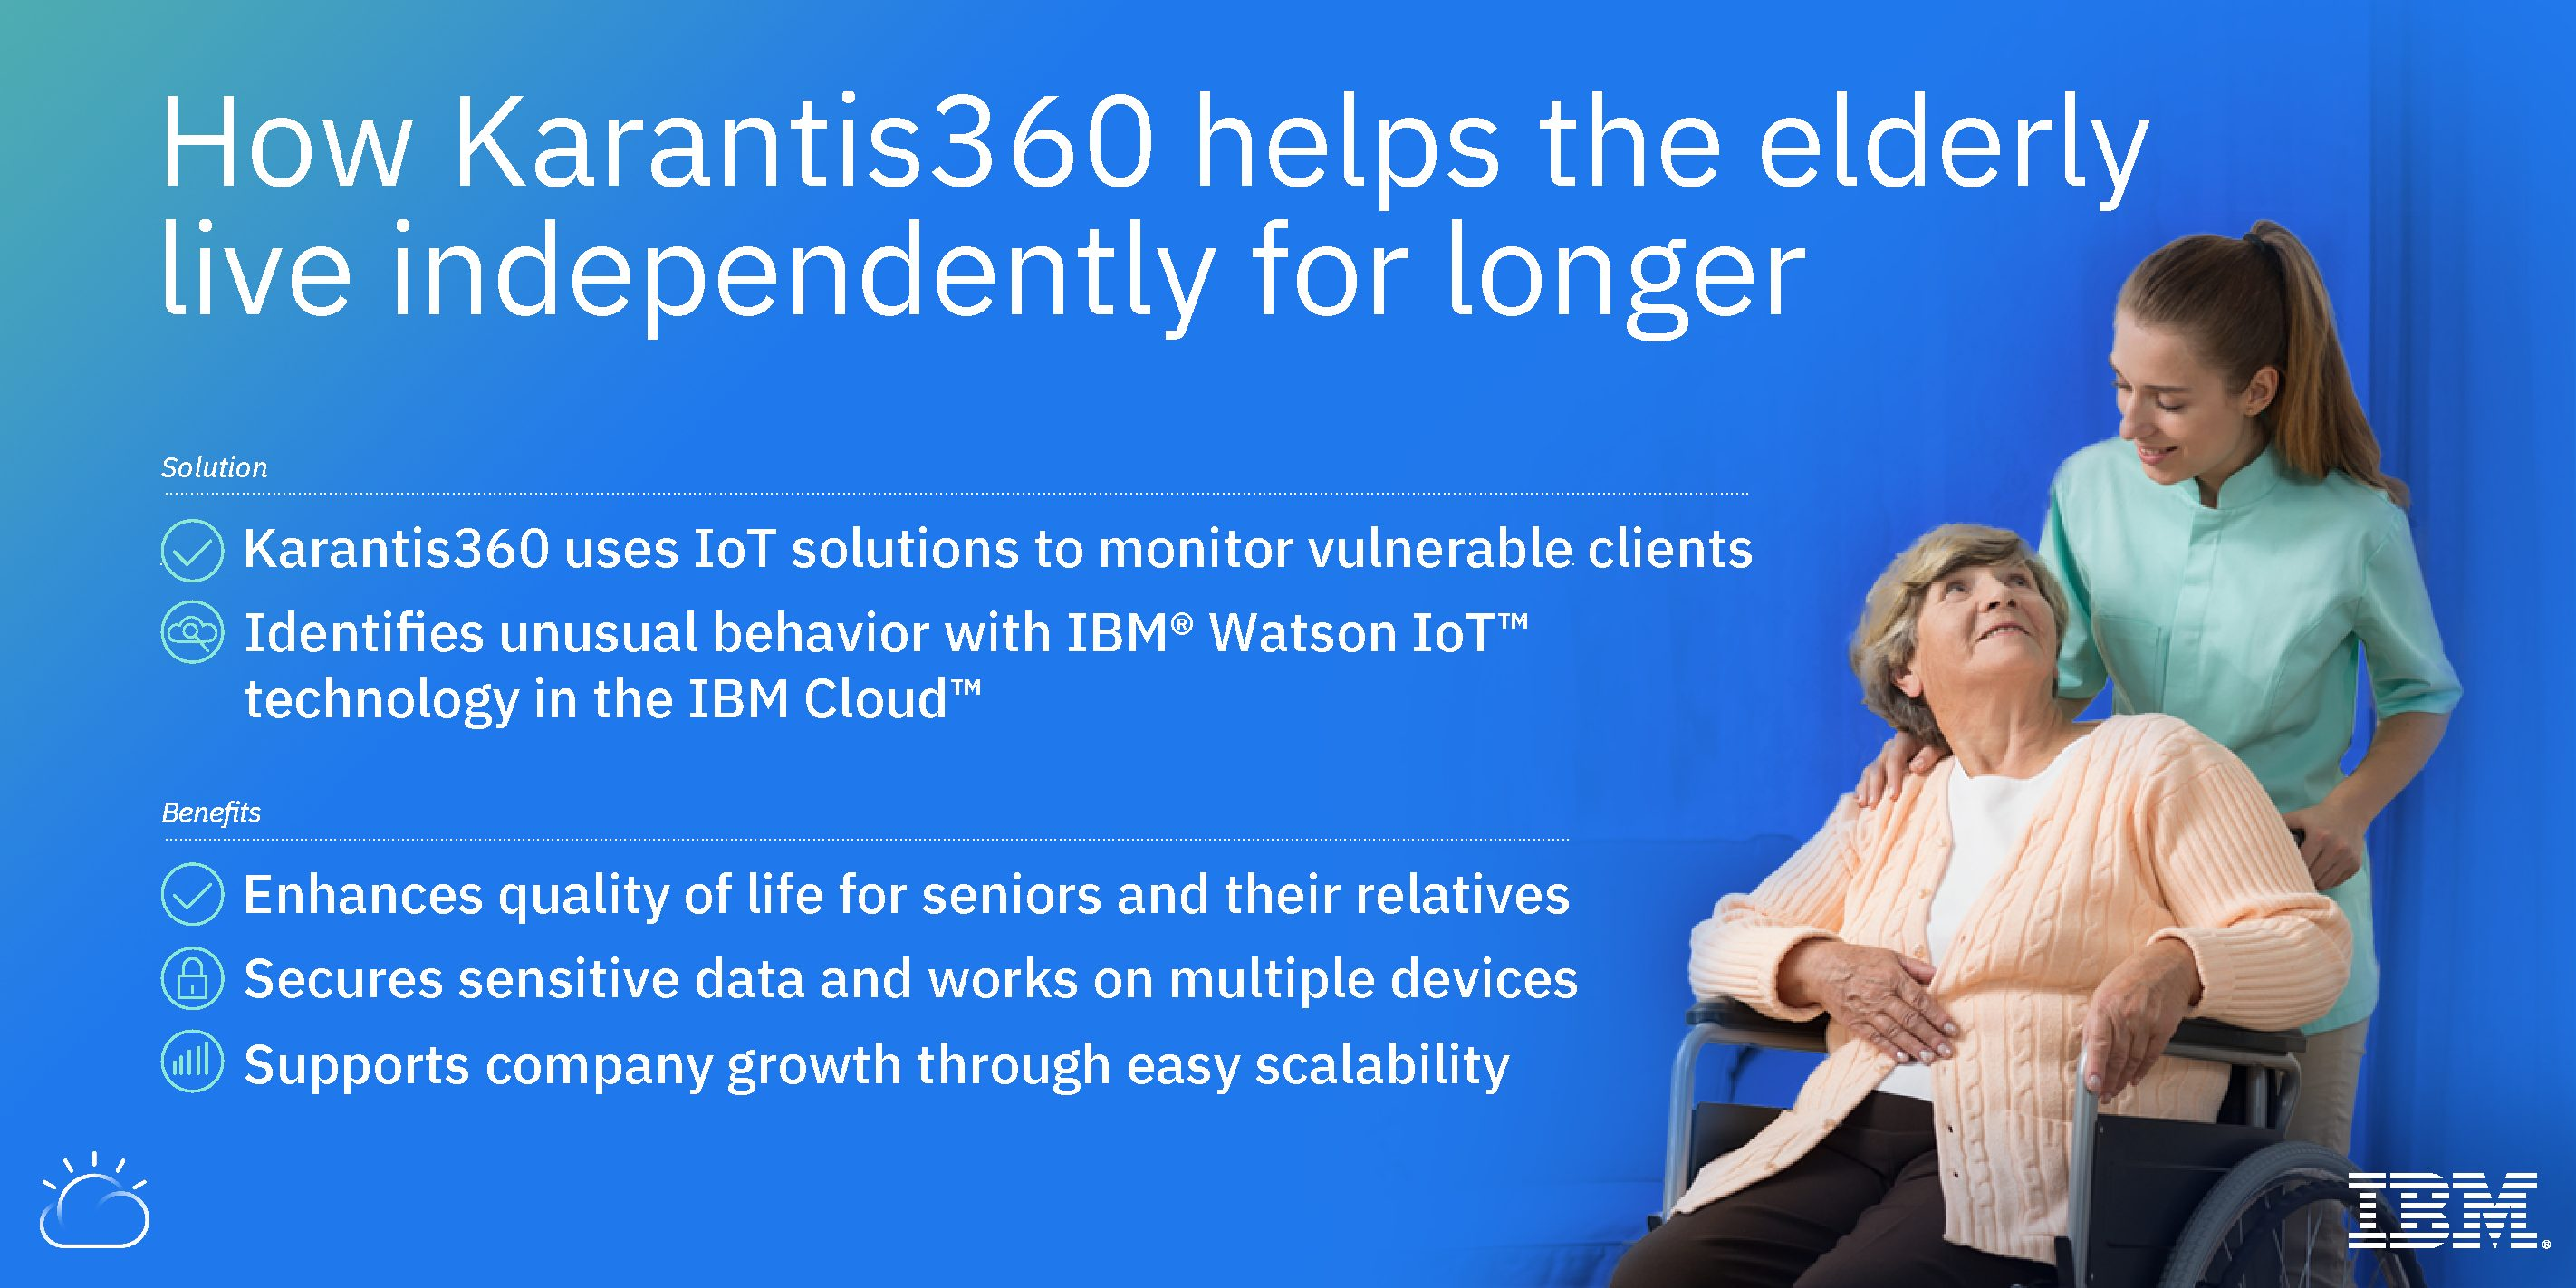 Karantis360 and the IBM Cloud